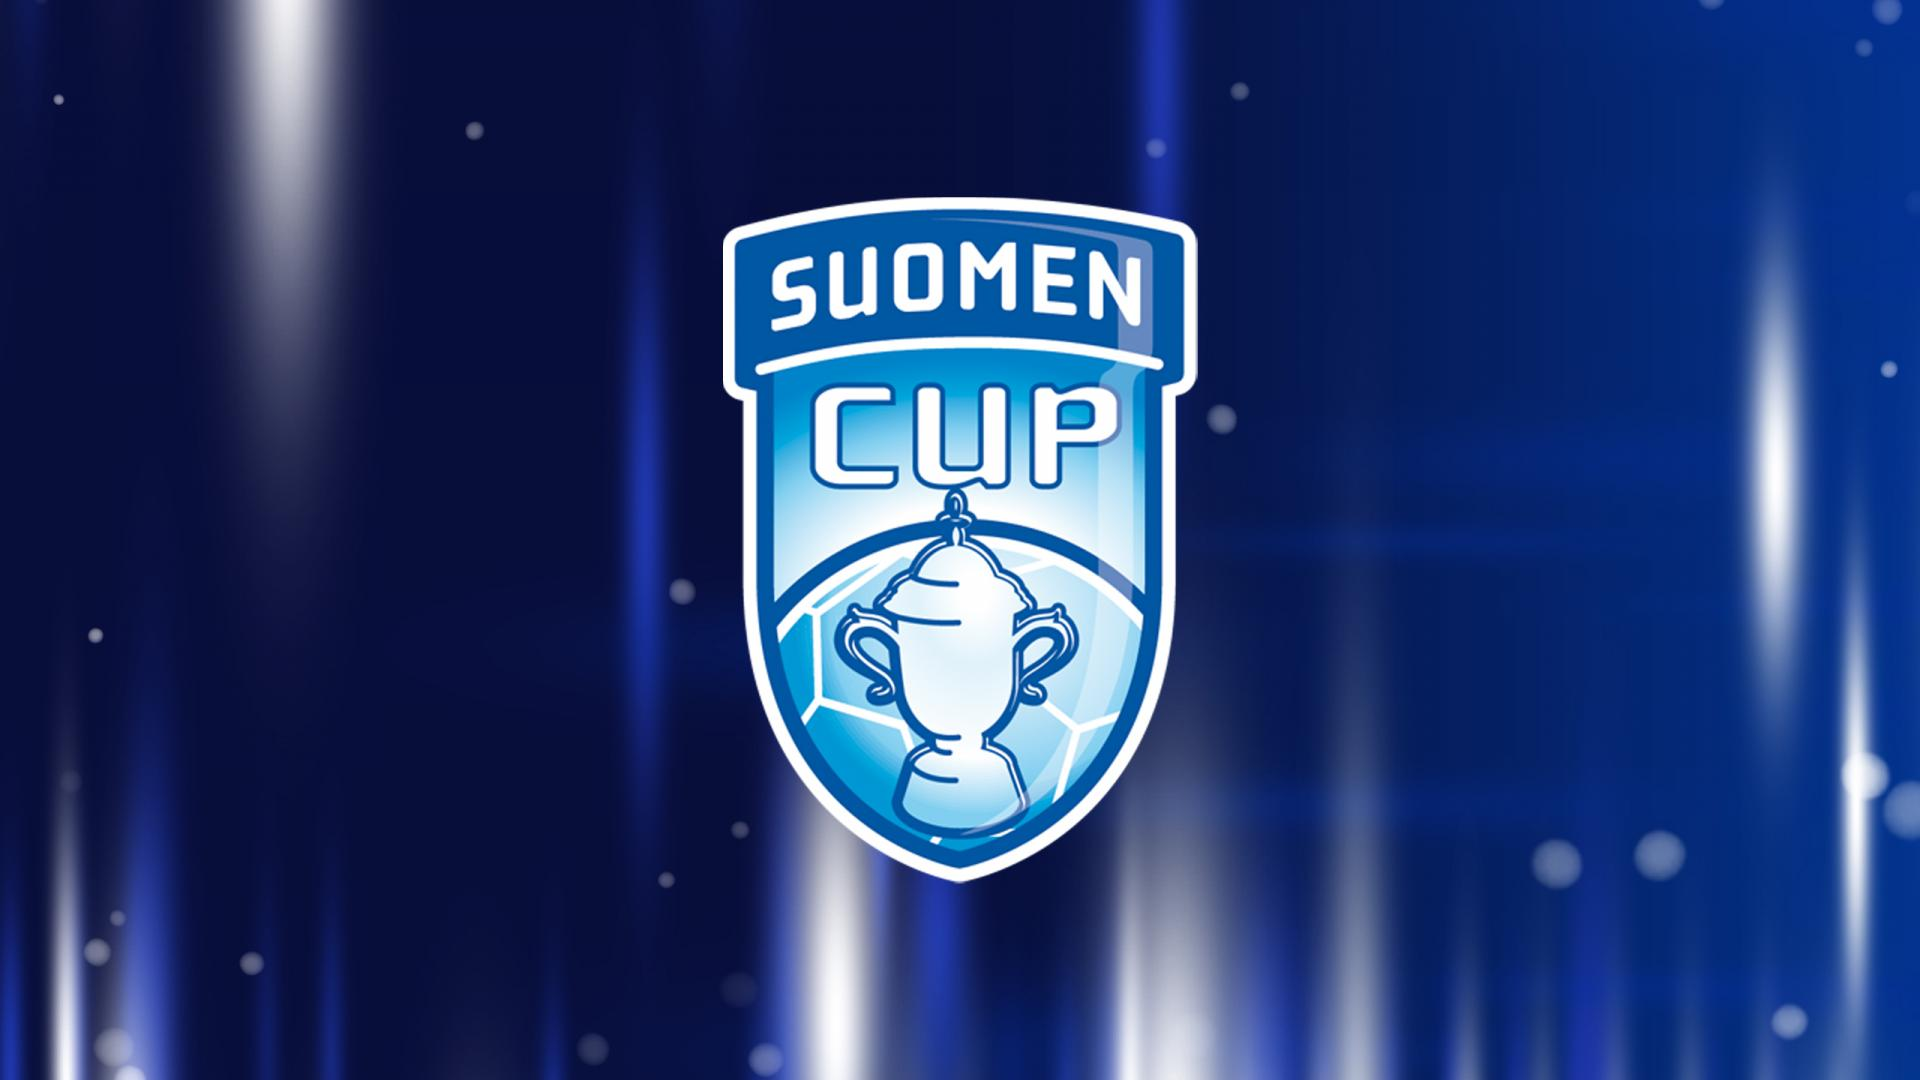 Suomencup